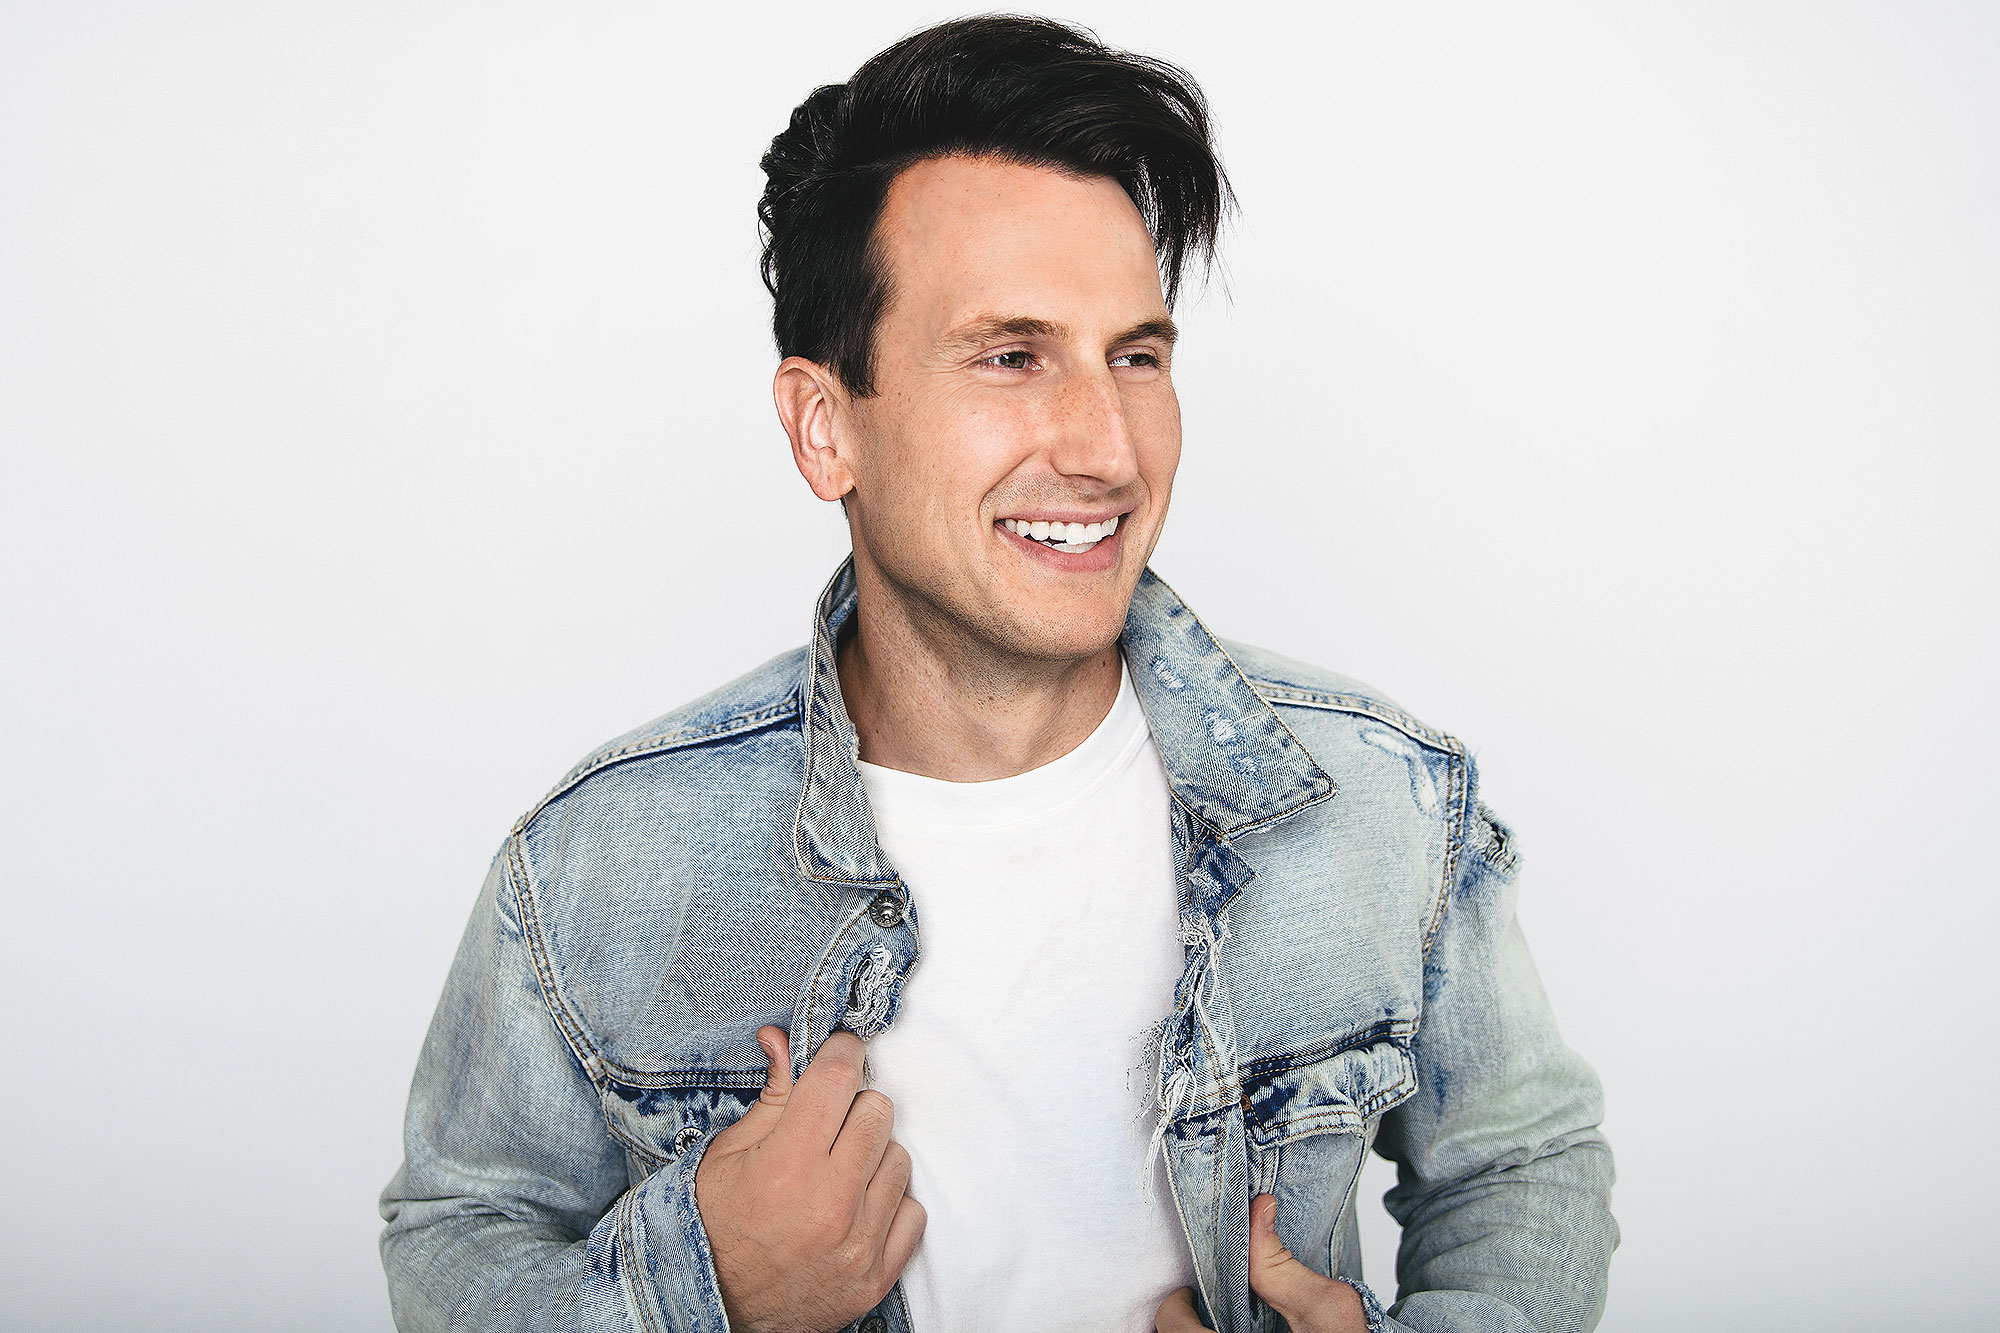 Russell DickersonCredit: Kailey Dickerson